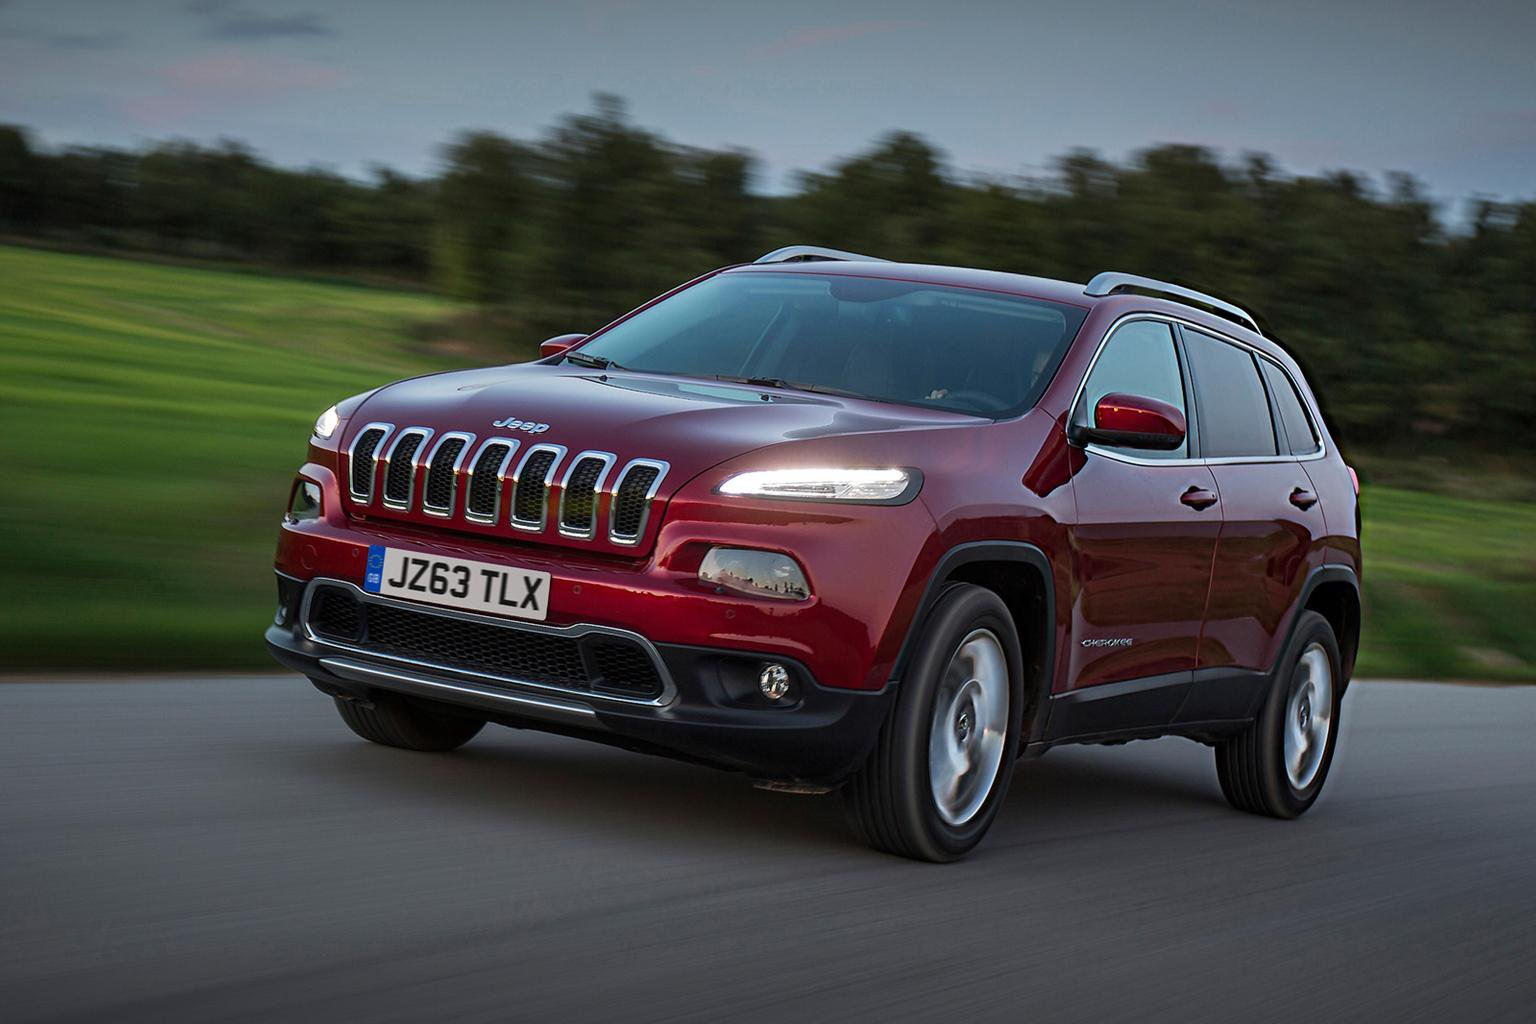 Jeep Cherokee prices start at 25,495